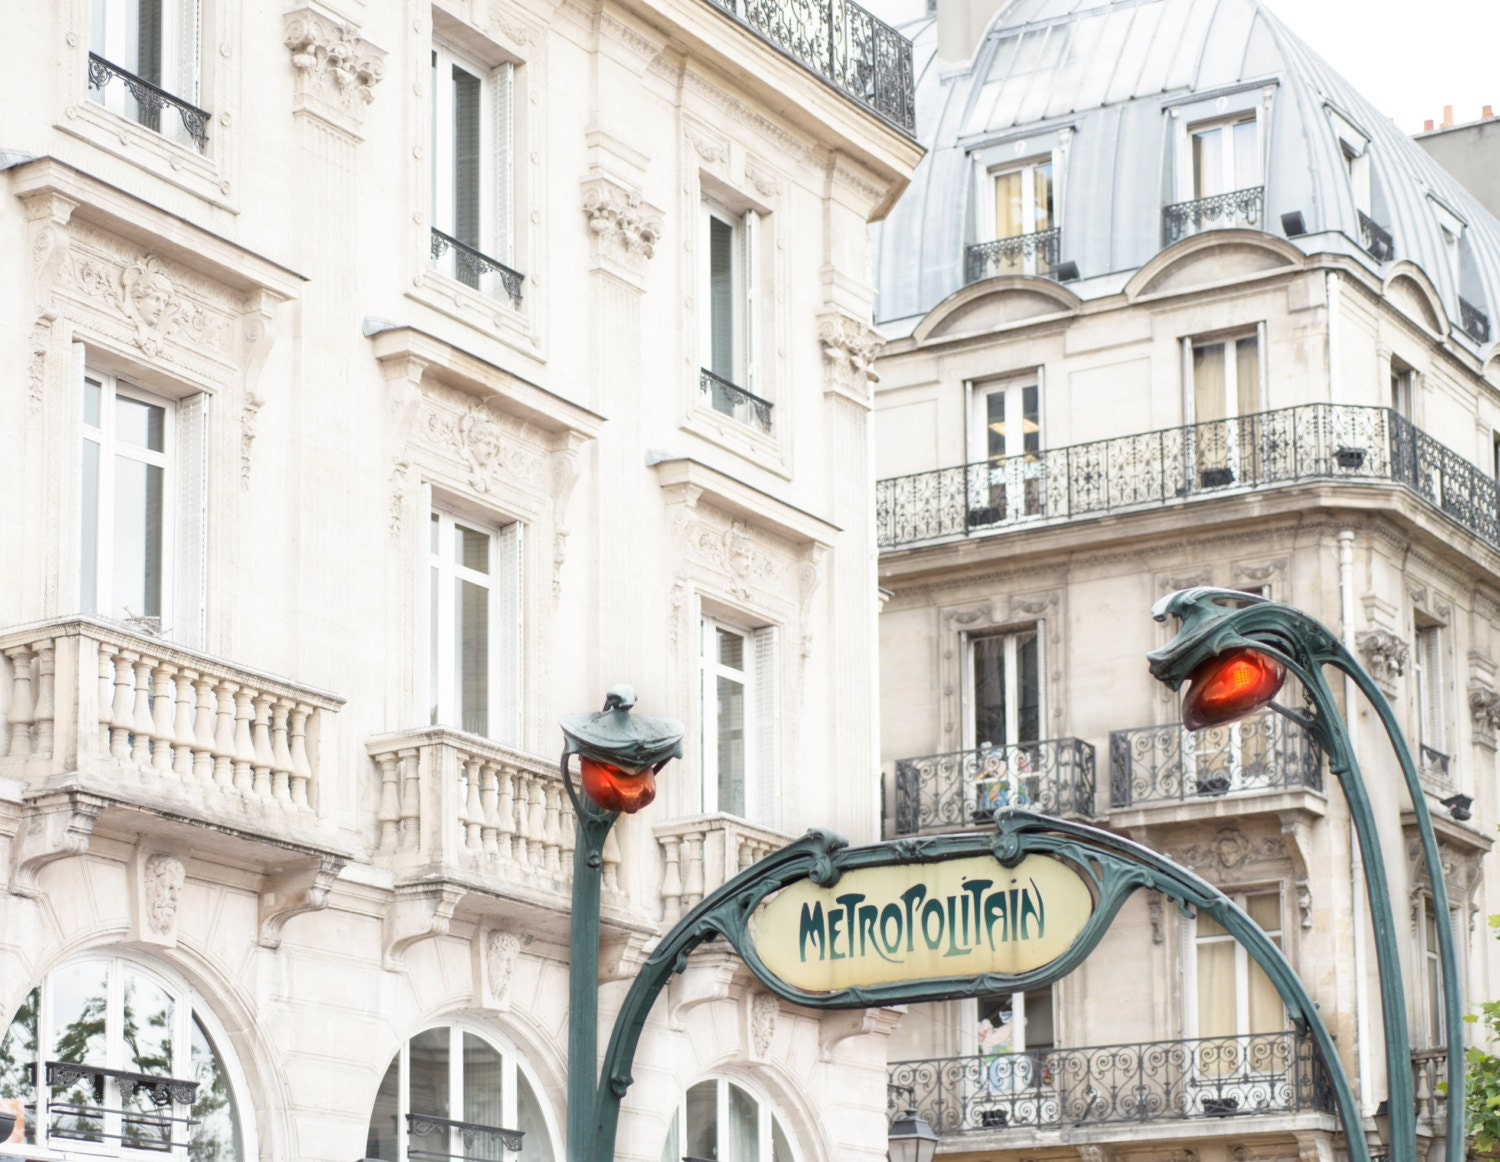 Paris photography le metro saint michel paris architectural - Metro saint michel paris ...